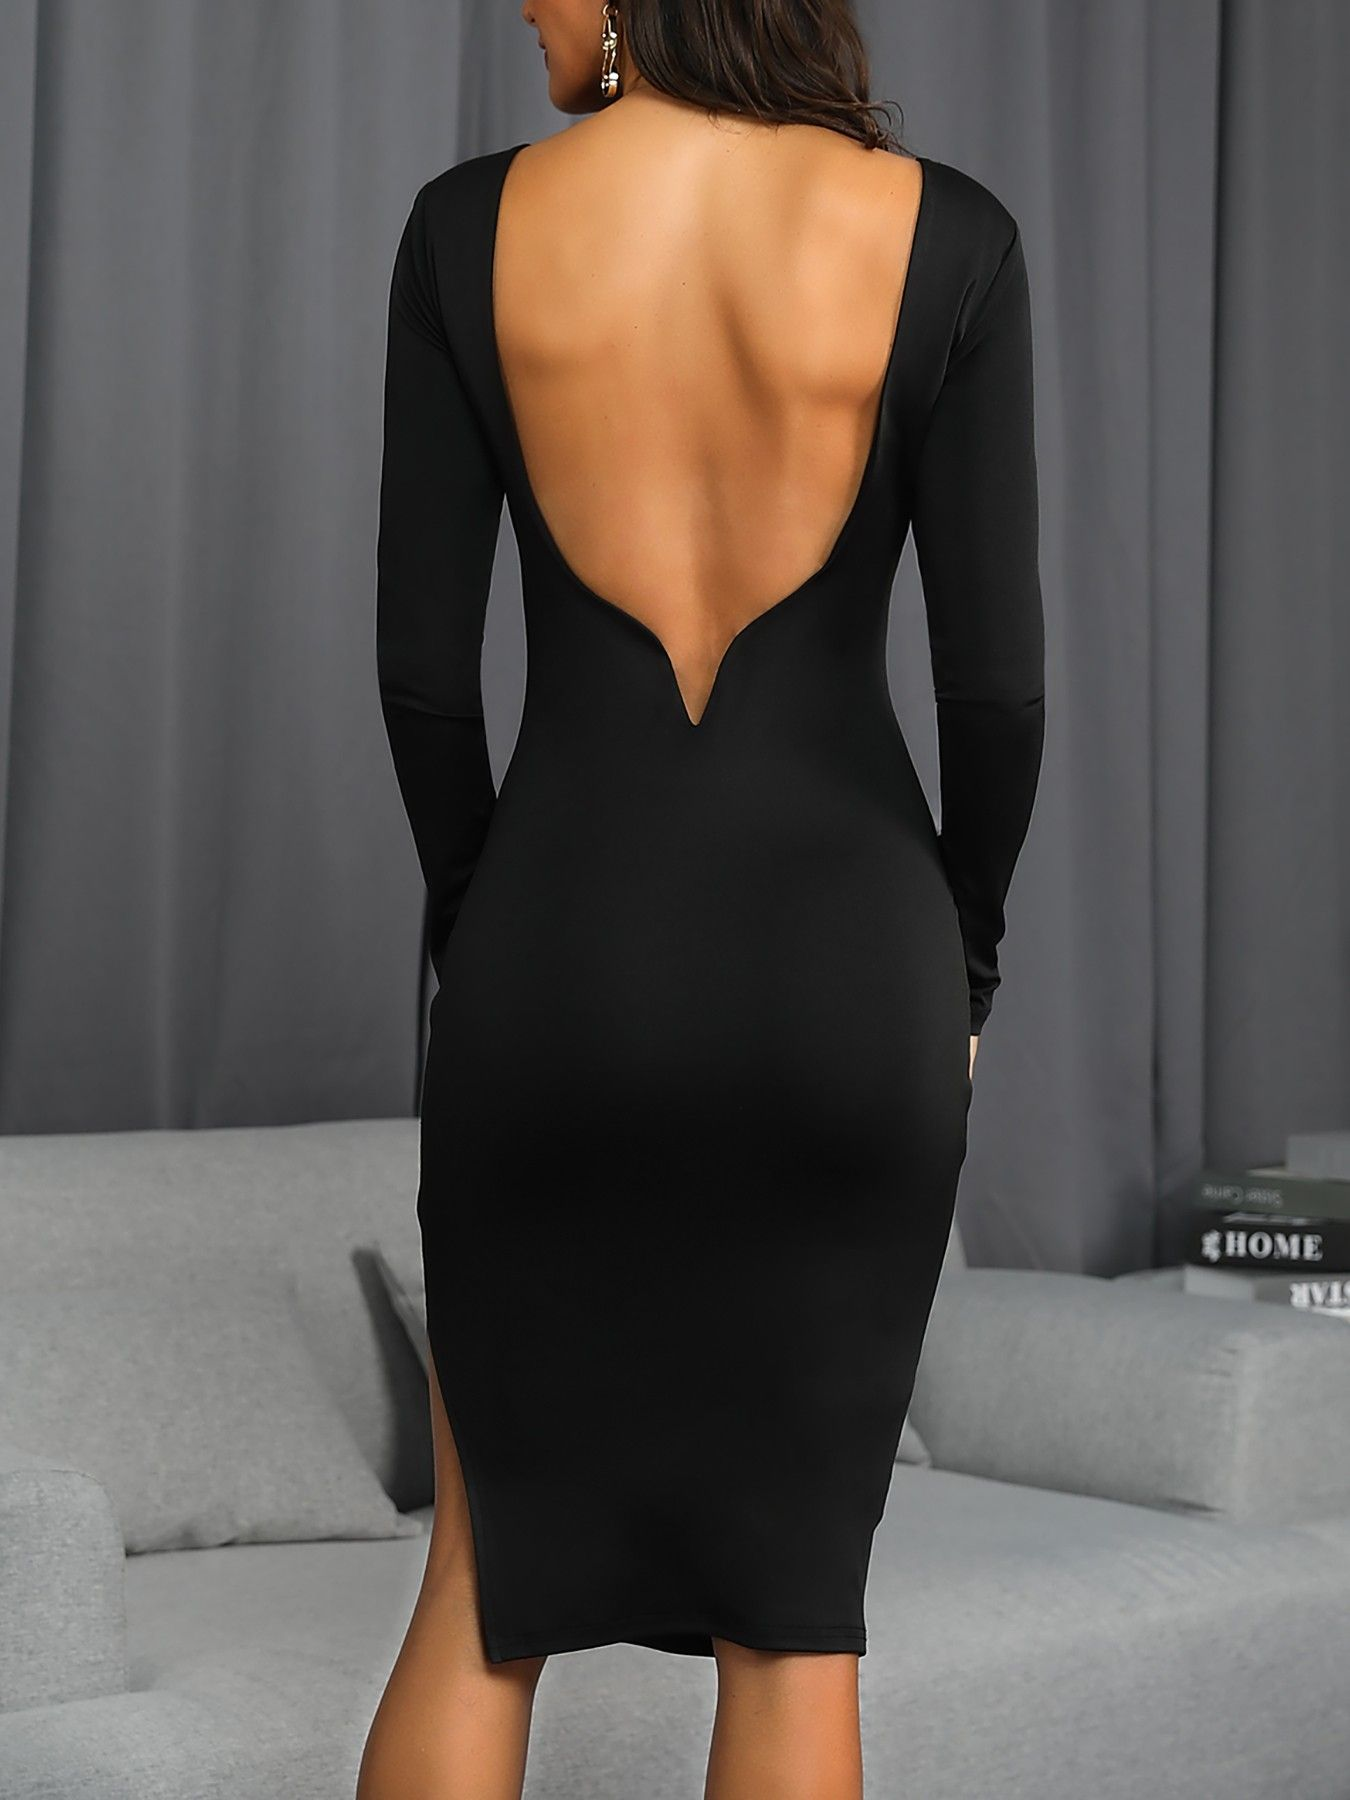 f85ca79be676 Open Back Side Slit Party Dress (S/M/L/XL) $29.99 | ChicMe Clothes ...